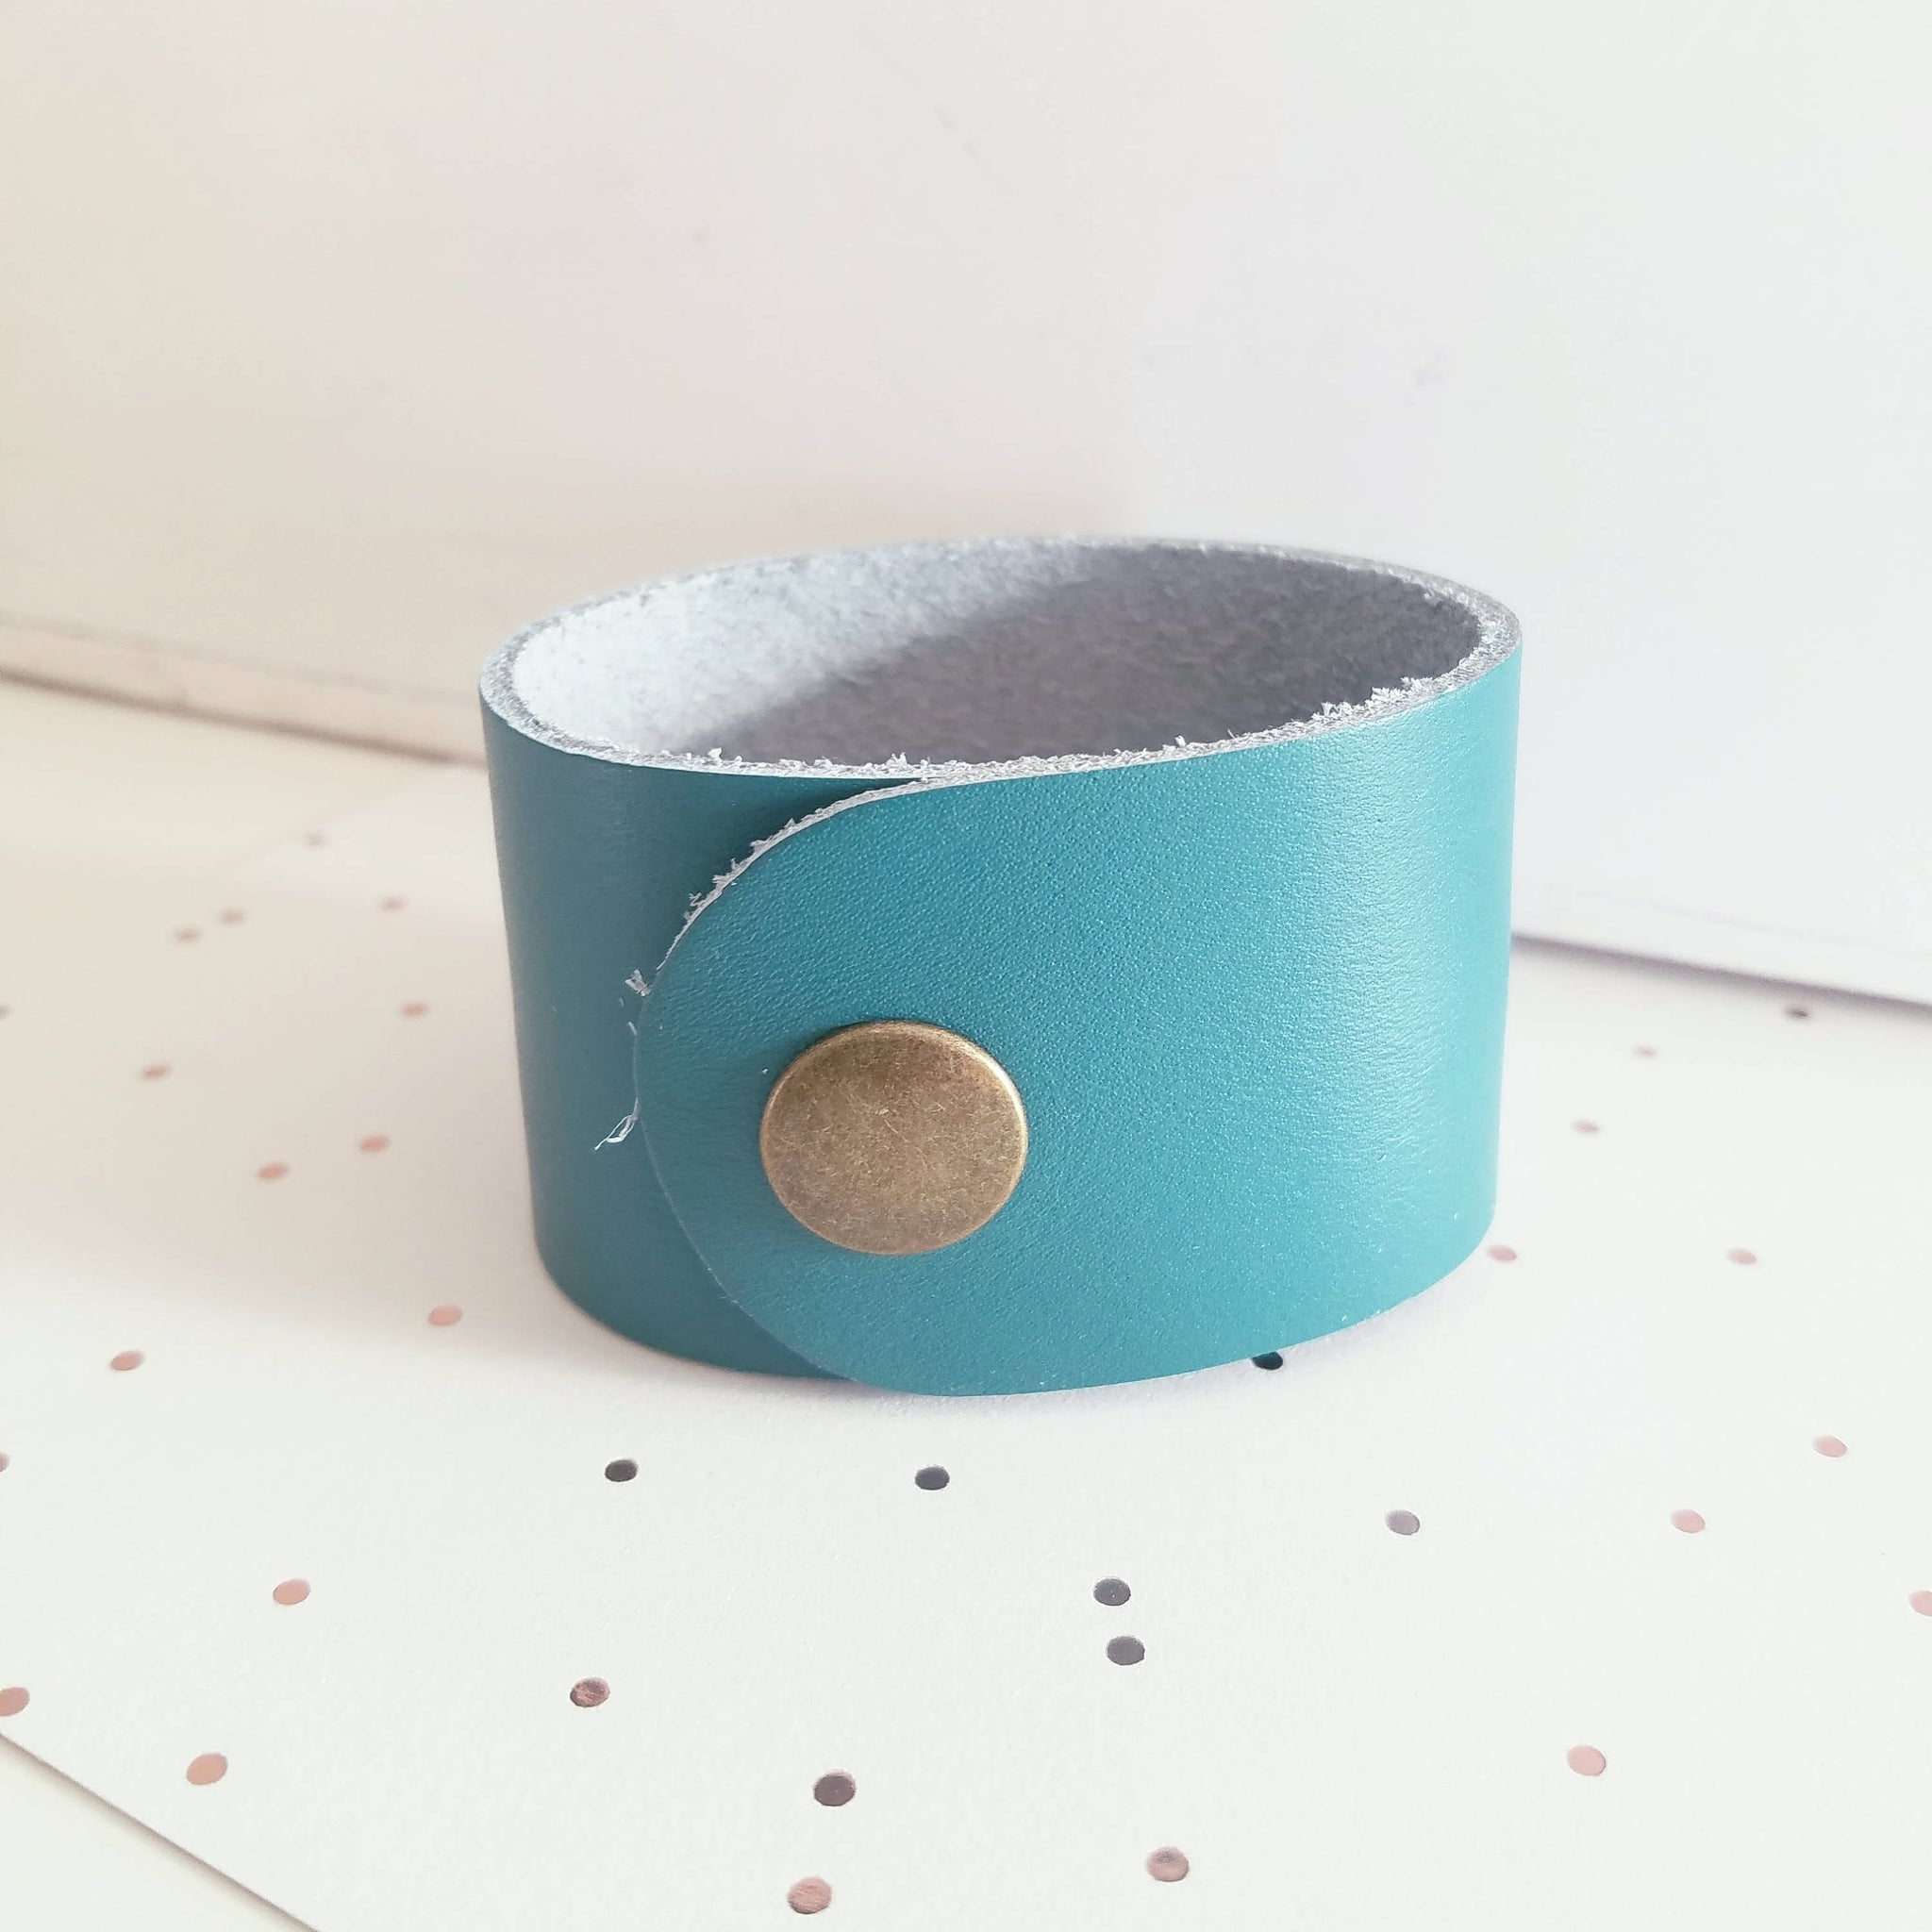 "Turquoise / Leather Cuff Bracelet / Adjustable Snap Closure / 1.5""x 9"" / FREE SHIPPING"